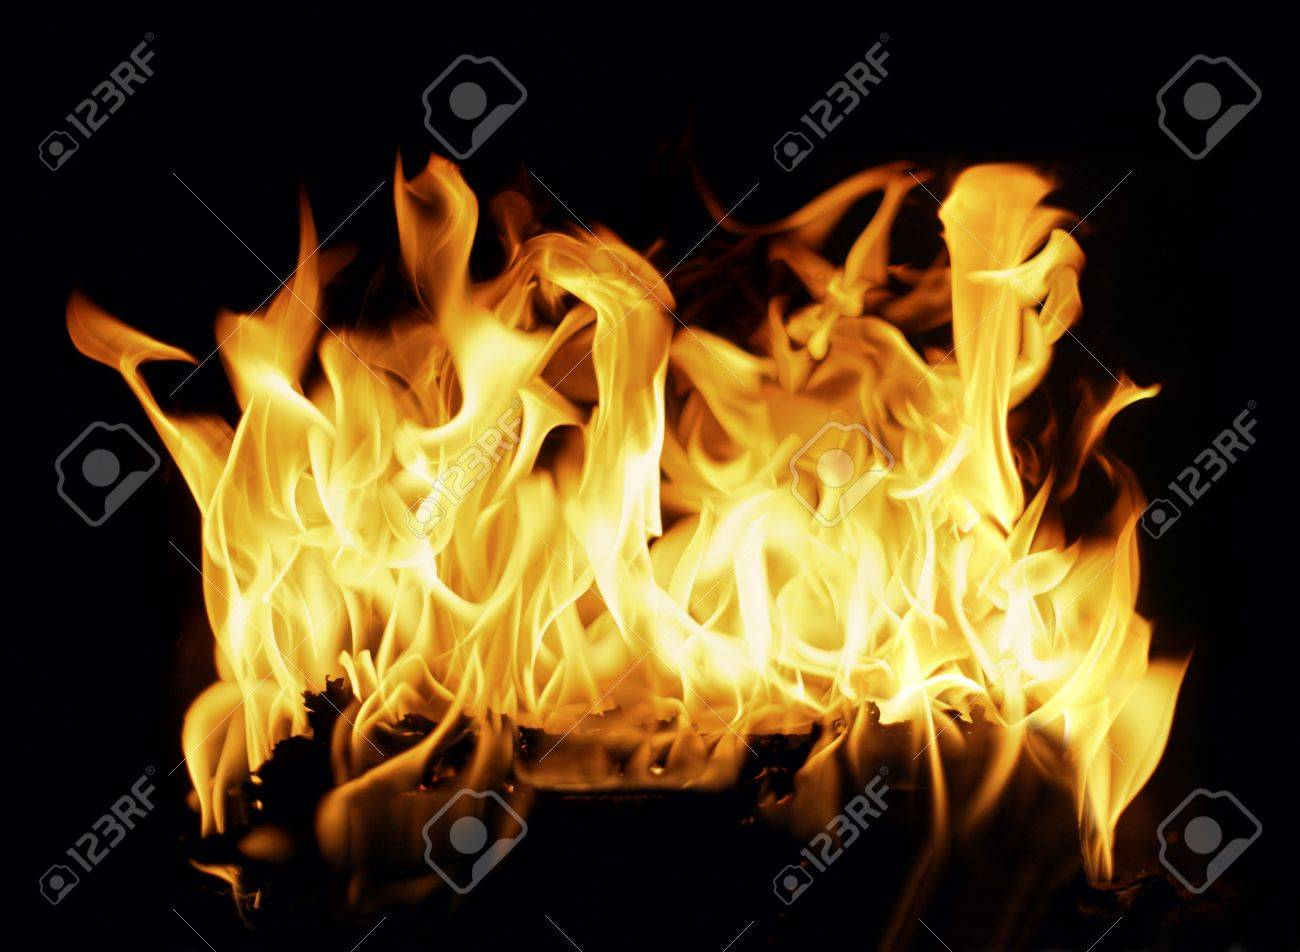 Beautiful stop-motion photo of a burning log in a fireplace Stock Photo - 2782304